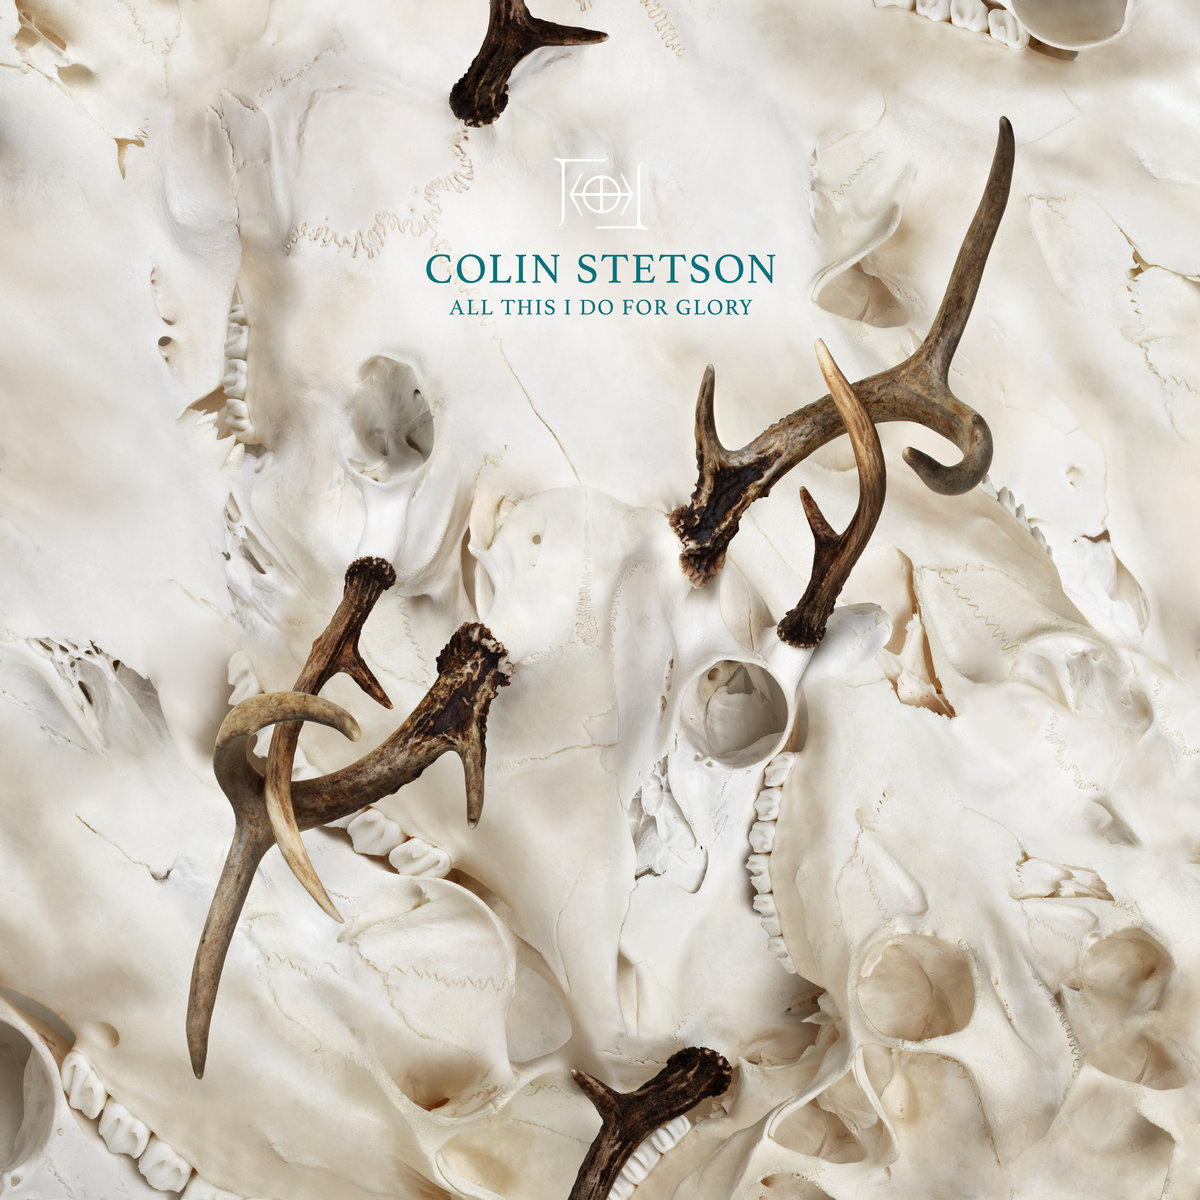 COLIN STETSON - ALL THIS I DO FOR GLORY (52HZ, 2017)